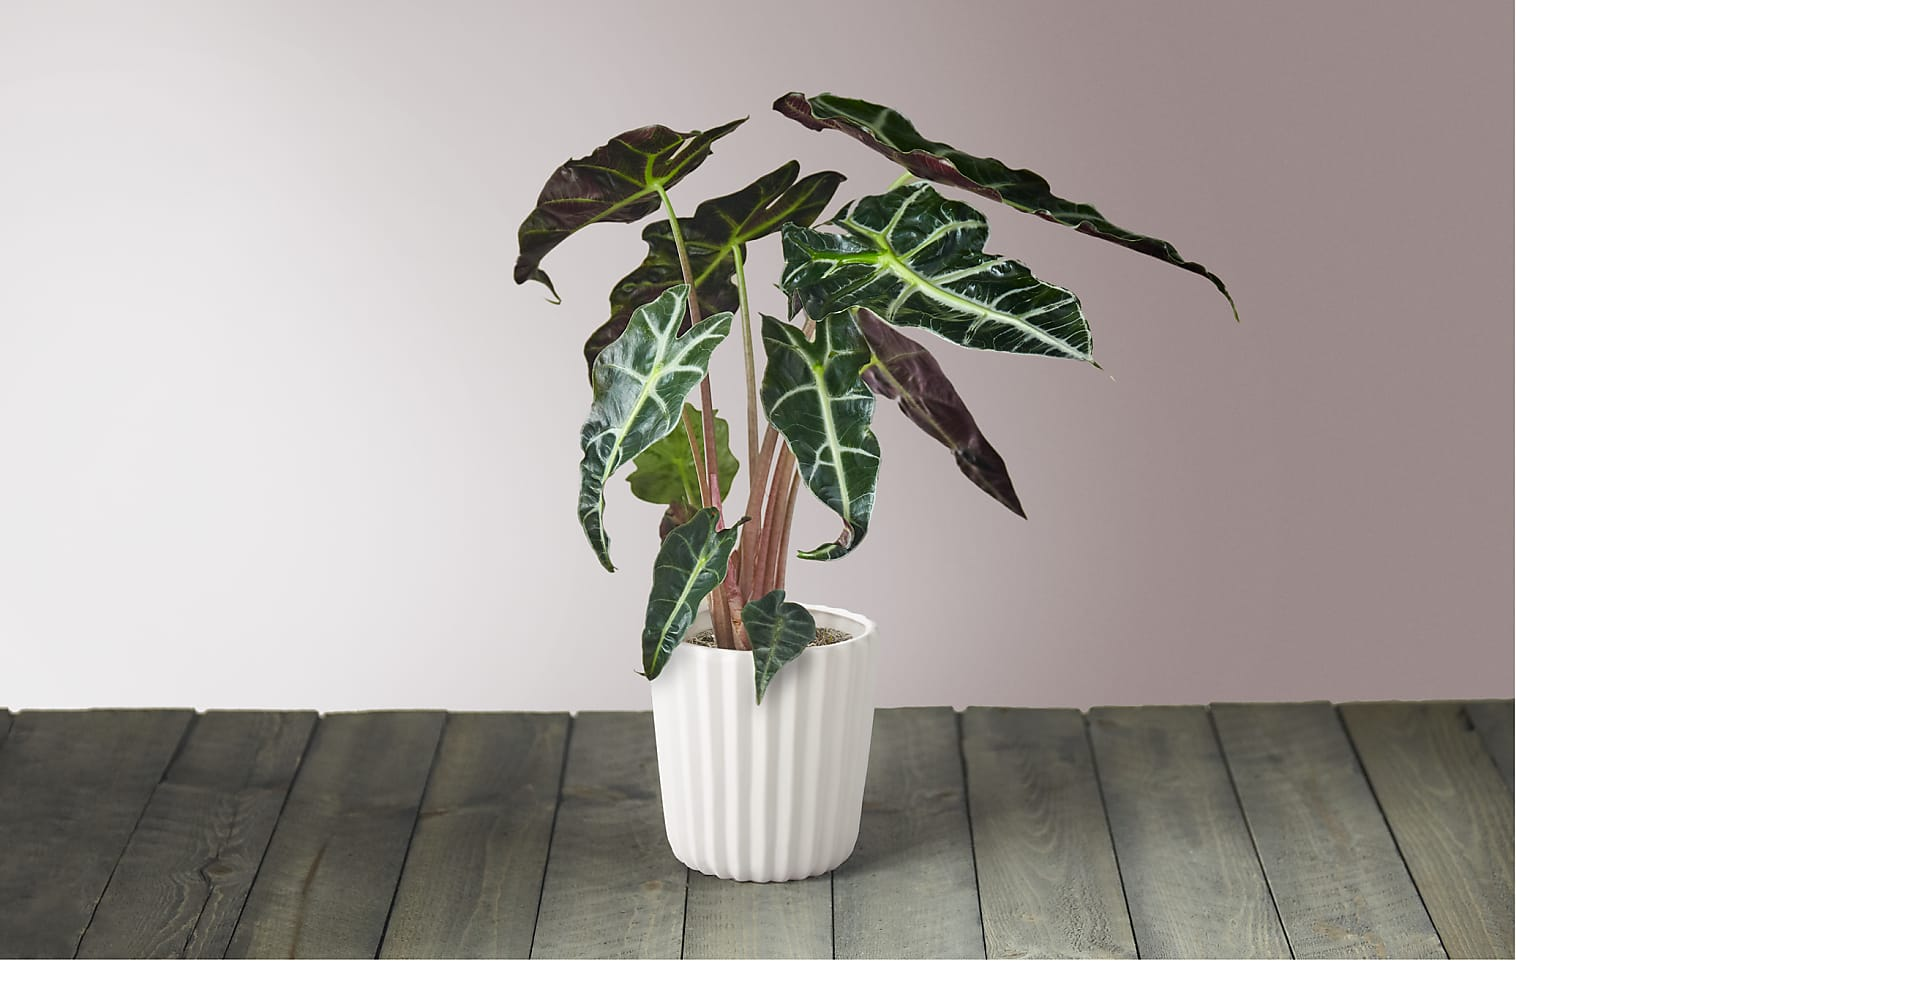 Elephant Ear Alocasia - Image 1 Of 5